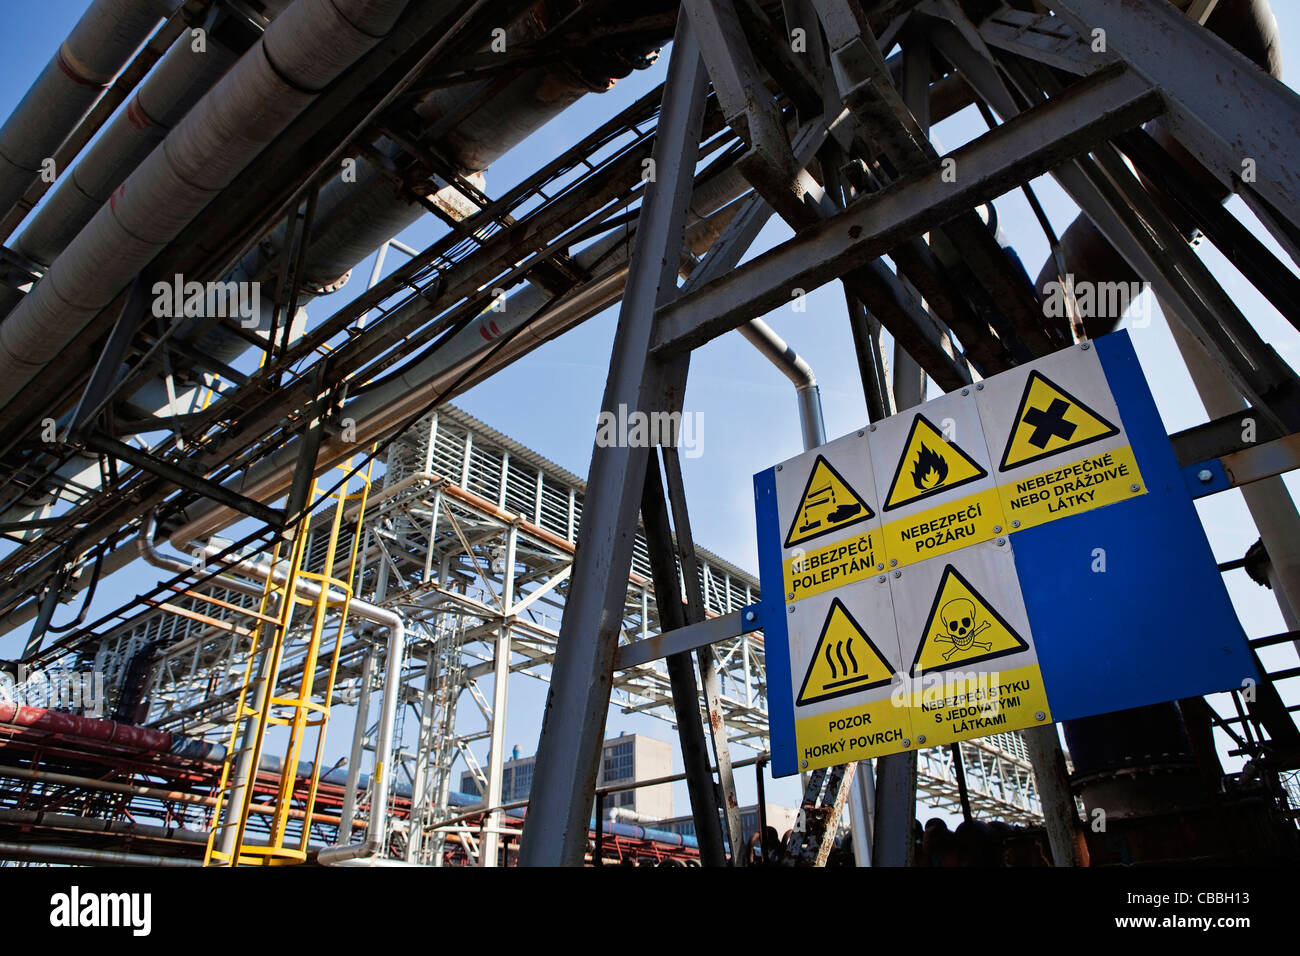 Security signs on an old production site for sulfur dioxide,  at the chemical factory Spolana a.s.  Spolana a.s. - Stock Image